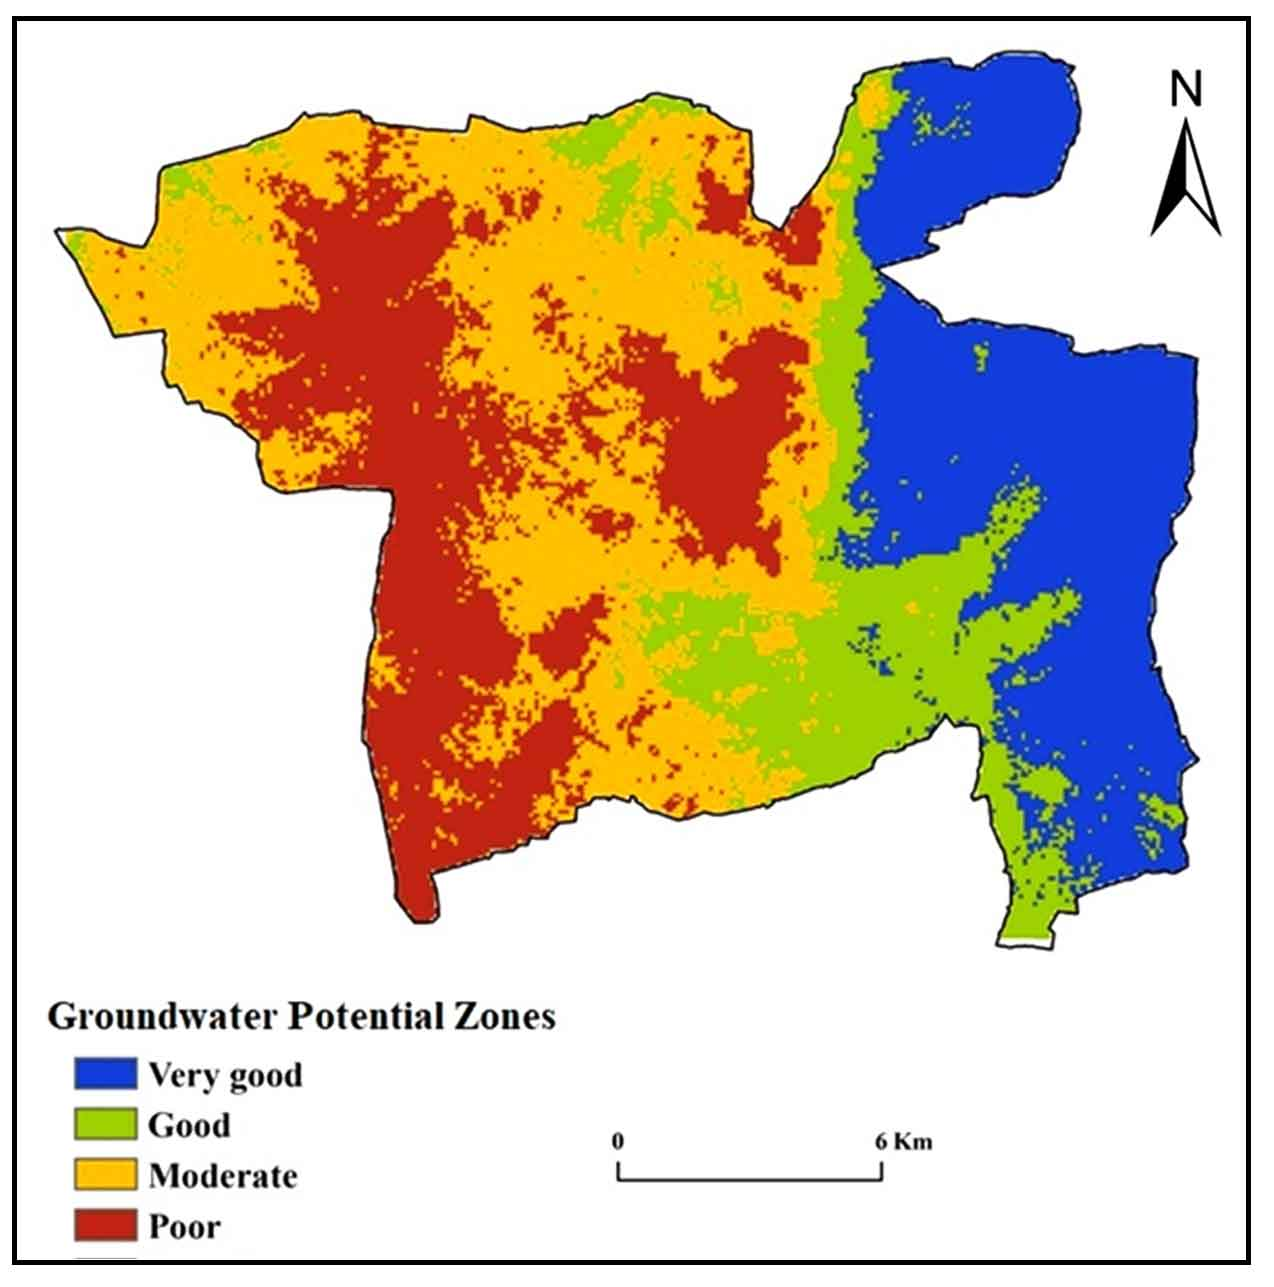 Assessment and Modeling of Groundwater Potential Zones by using Geospatial and Decision-making approaches: A case study in Anantapur district, Andhra Pradesh, India